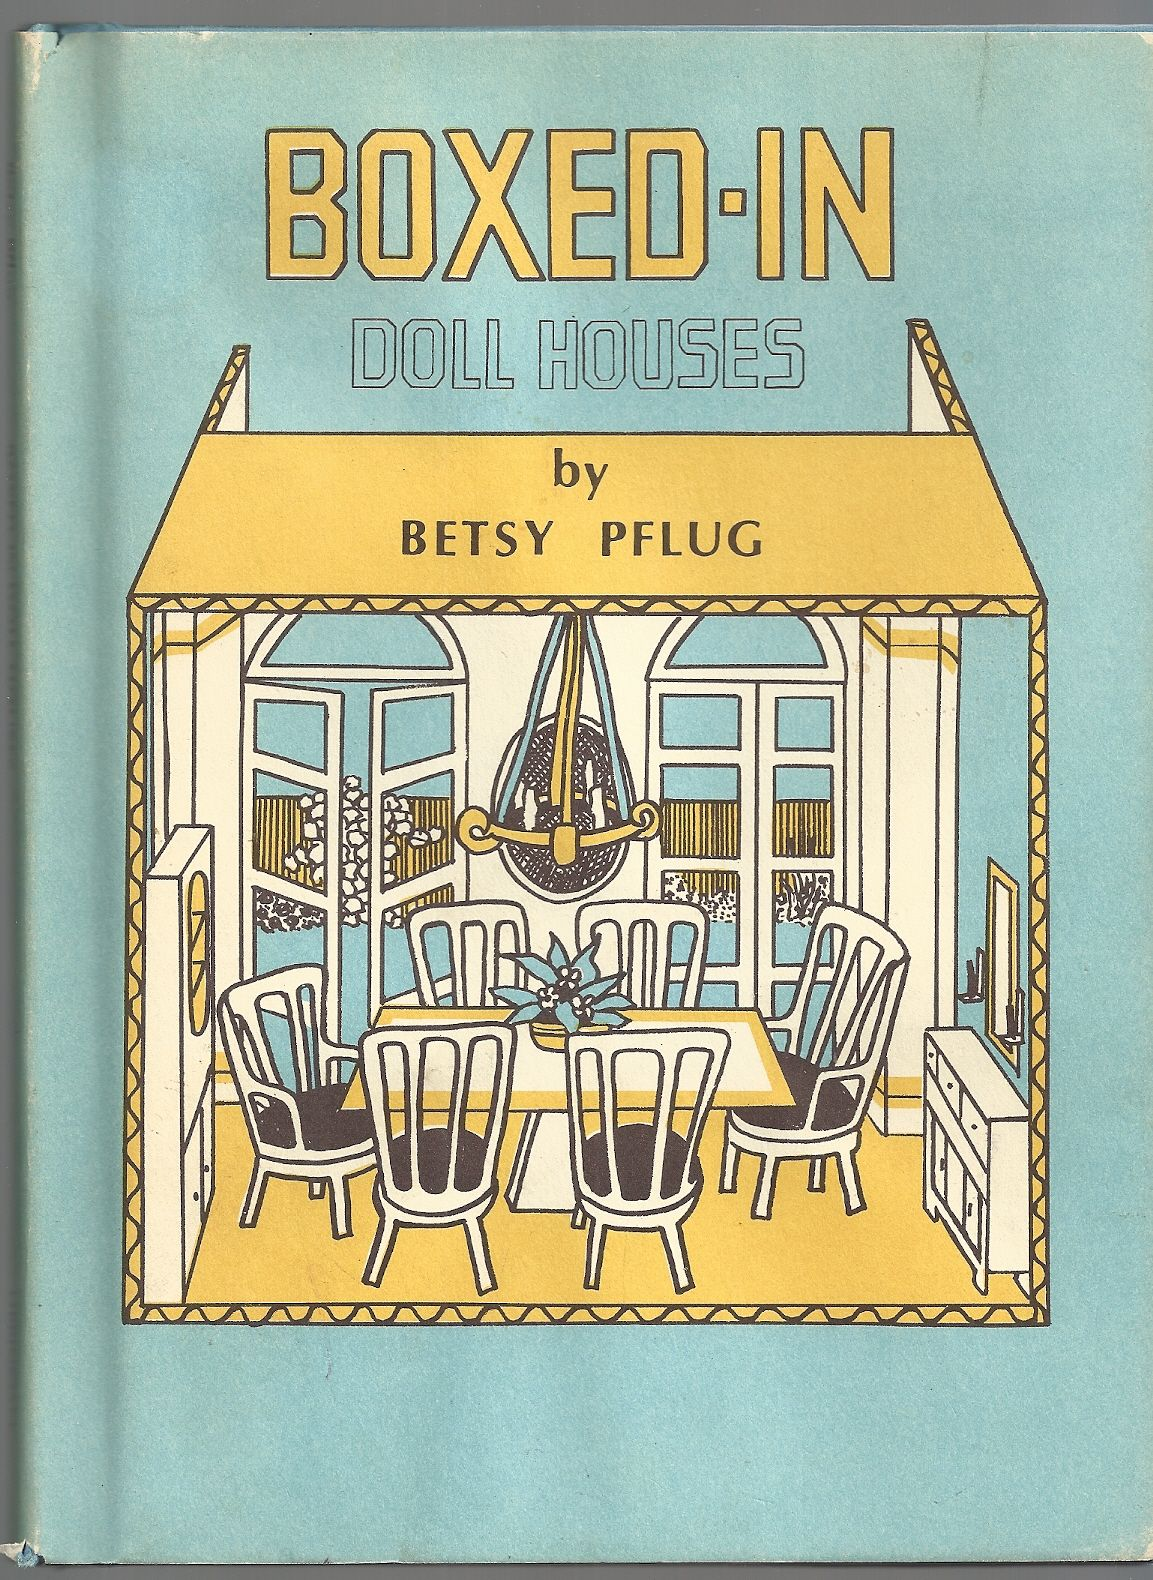 Boxed-in Doll Houses, Betsy Pflug